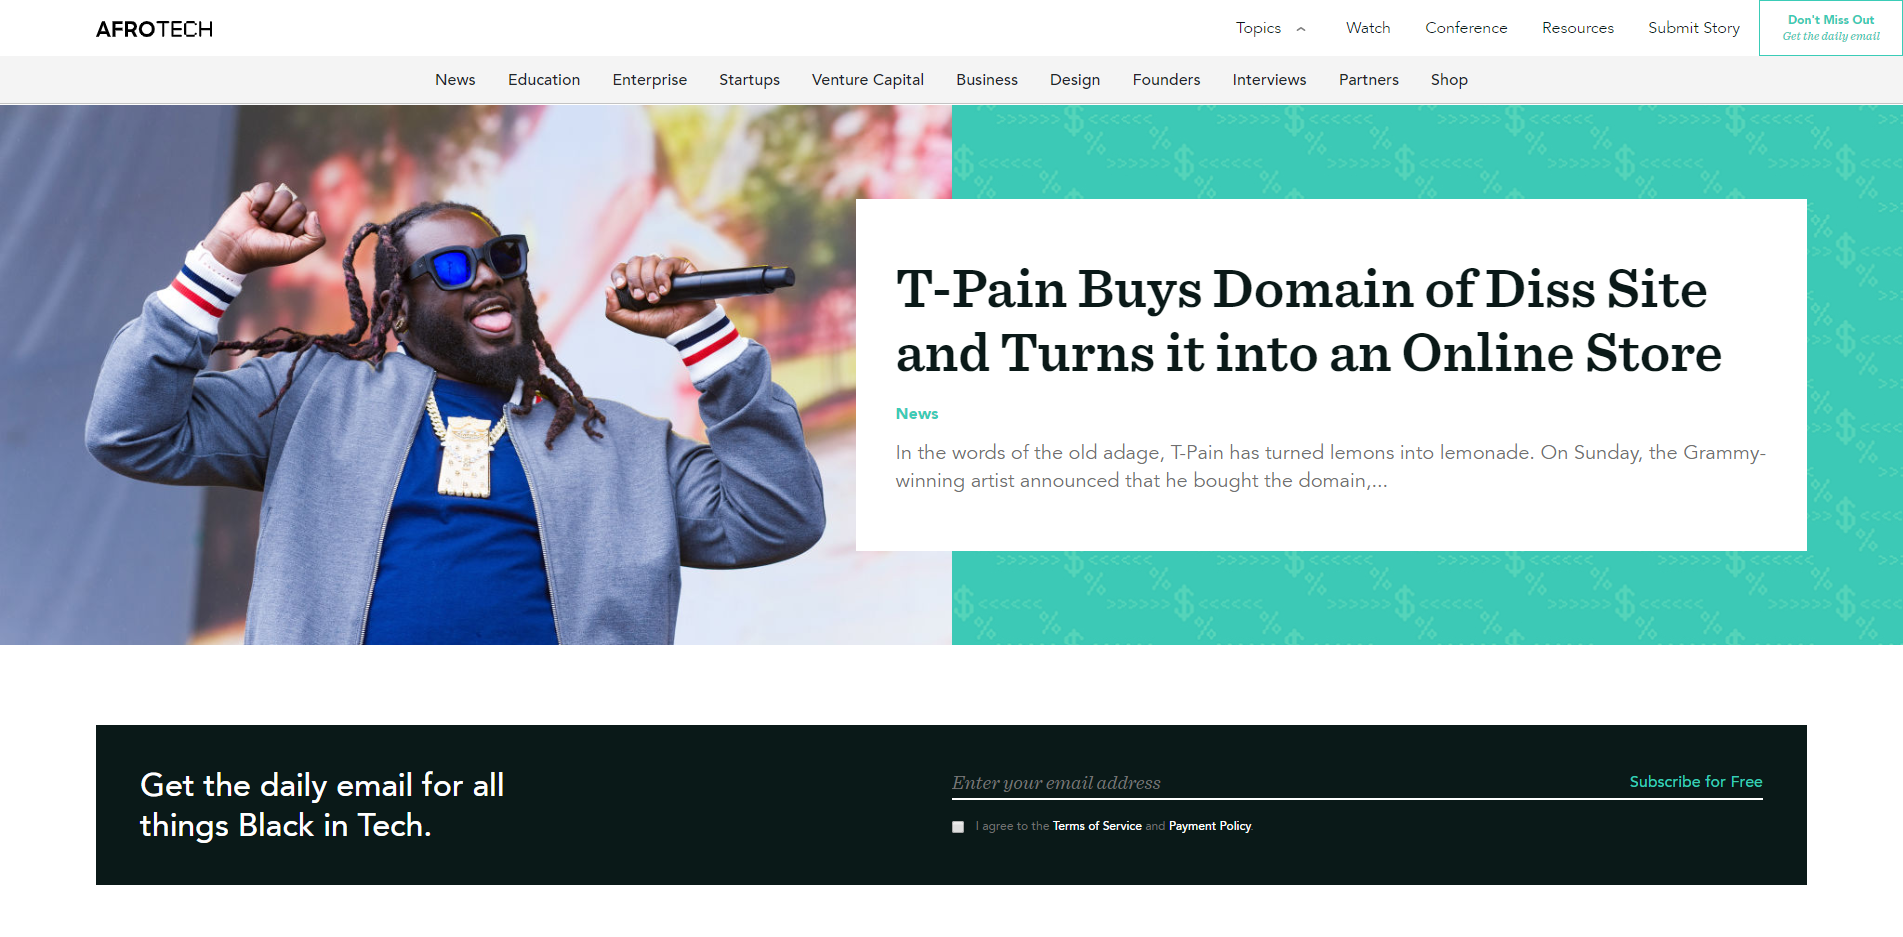 7 African American Luxury Lifestyle News Sites You Should Be Reading Beyond Bylines